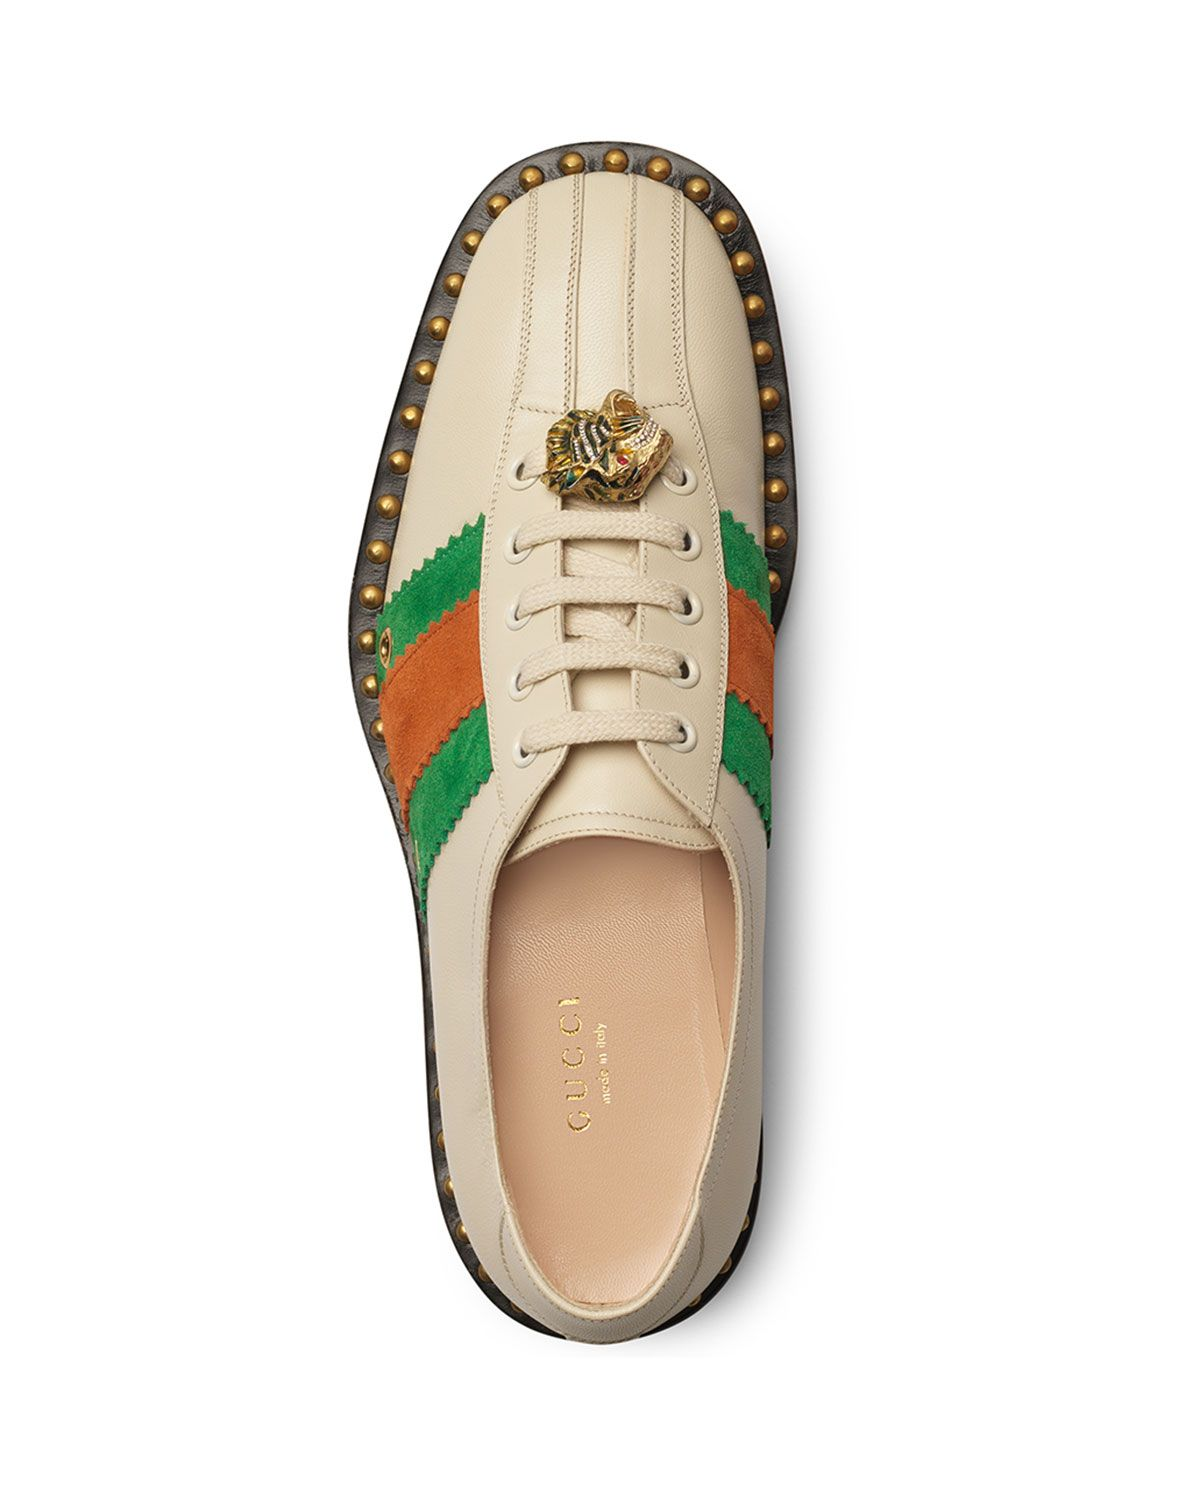 Gucci Leather Lace-Up Bowling Shoe